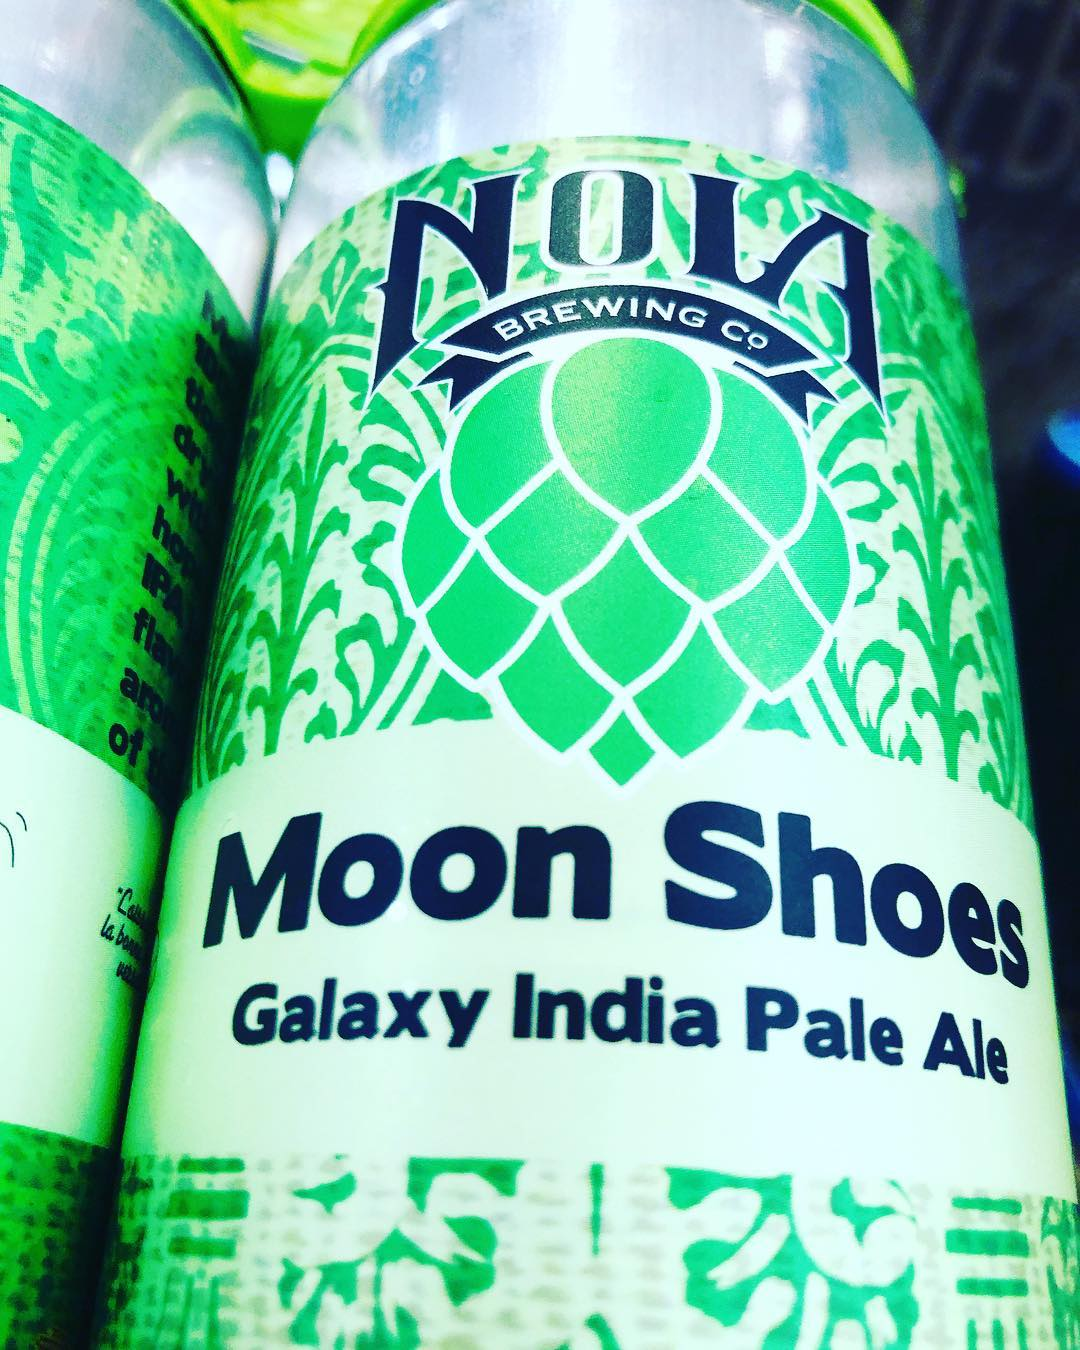 @nolabrewing Moon Shoes is now available at BOTH locations! #beer #drinklocal #midcitybr #freshhops